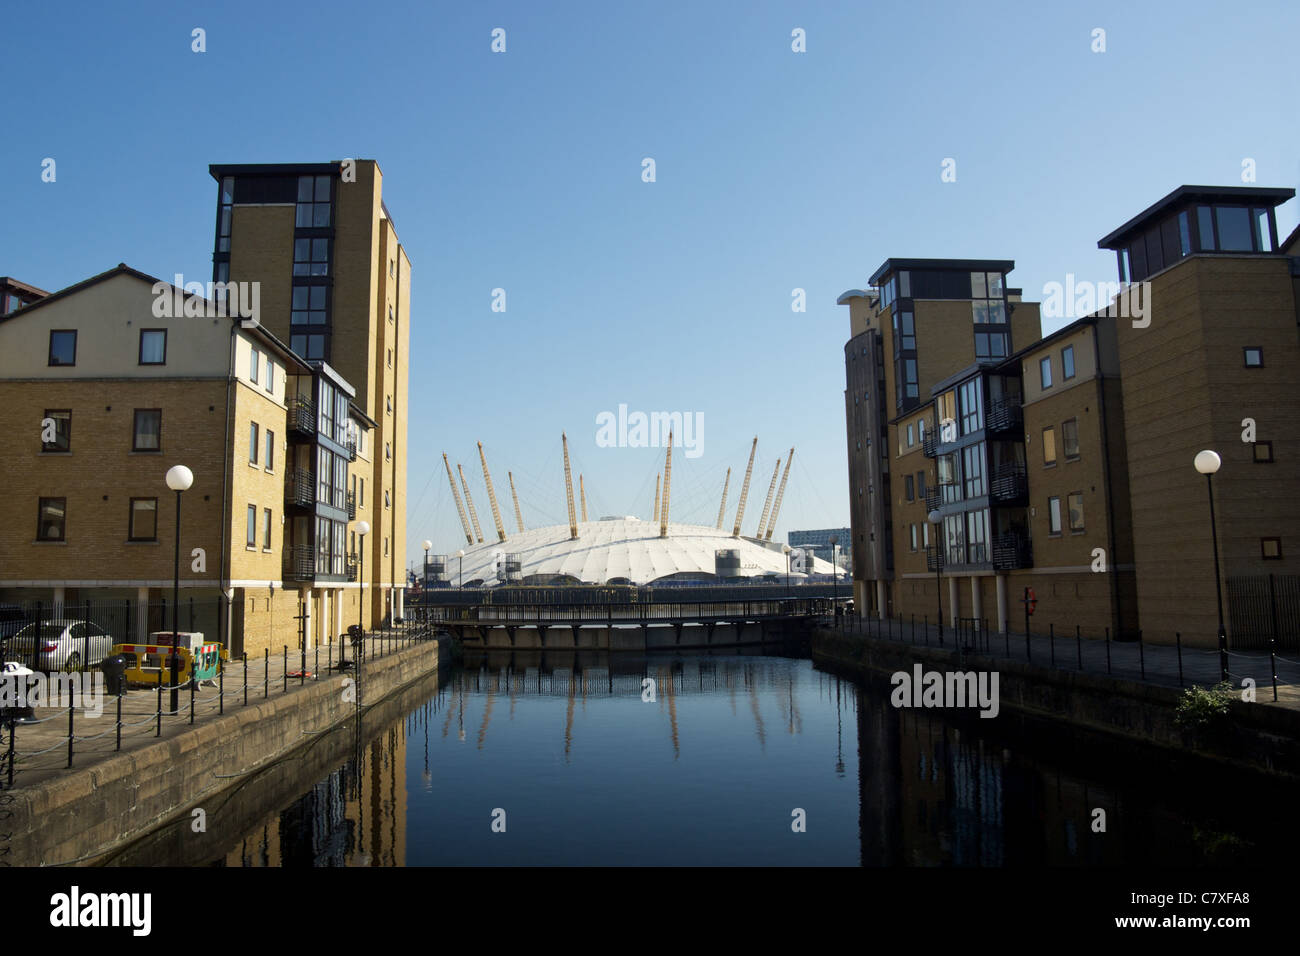 The O2 from the Isle of Dogs - Stock Image